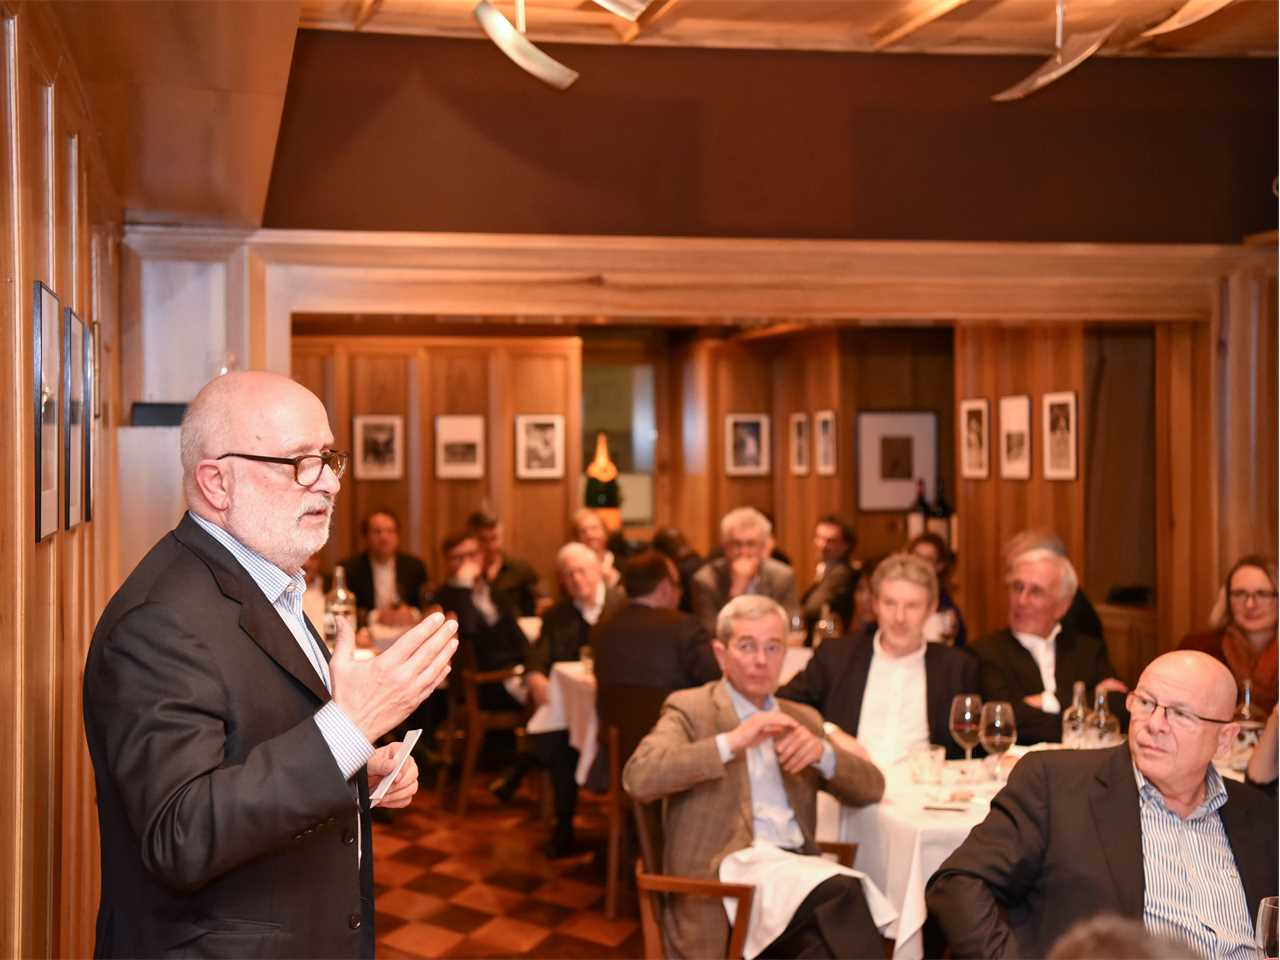 Farewell for Rolf Soiron, founding Chairman of the LafargeHolcim Foundation